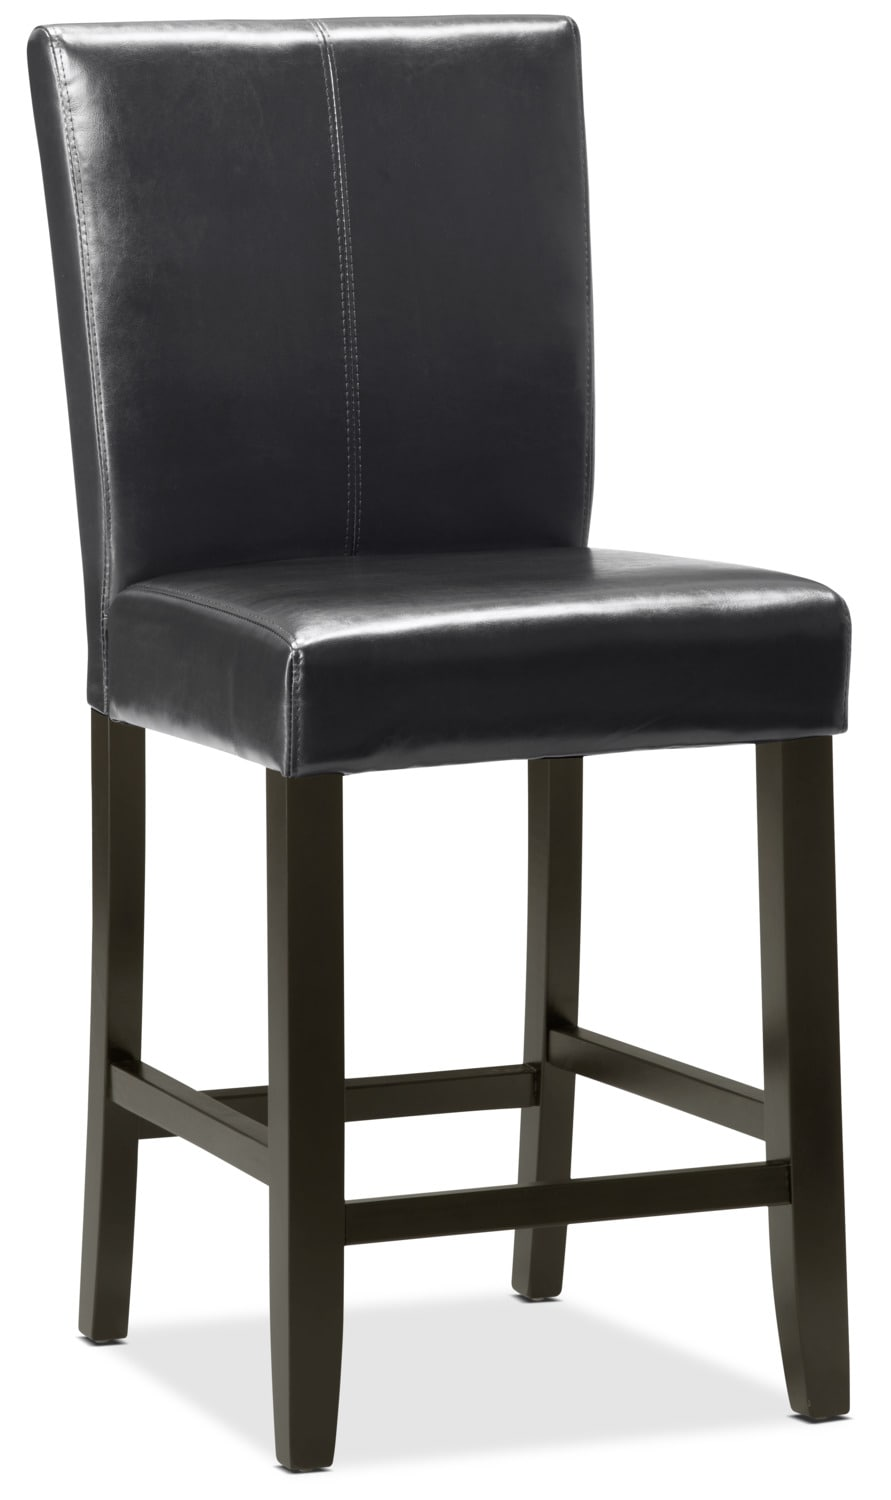 Black Counter-Height Dining Chair